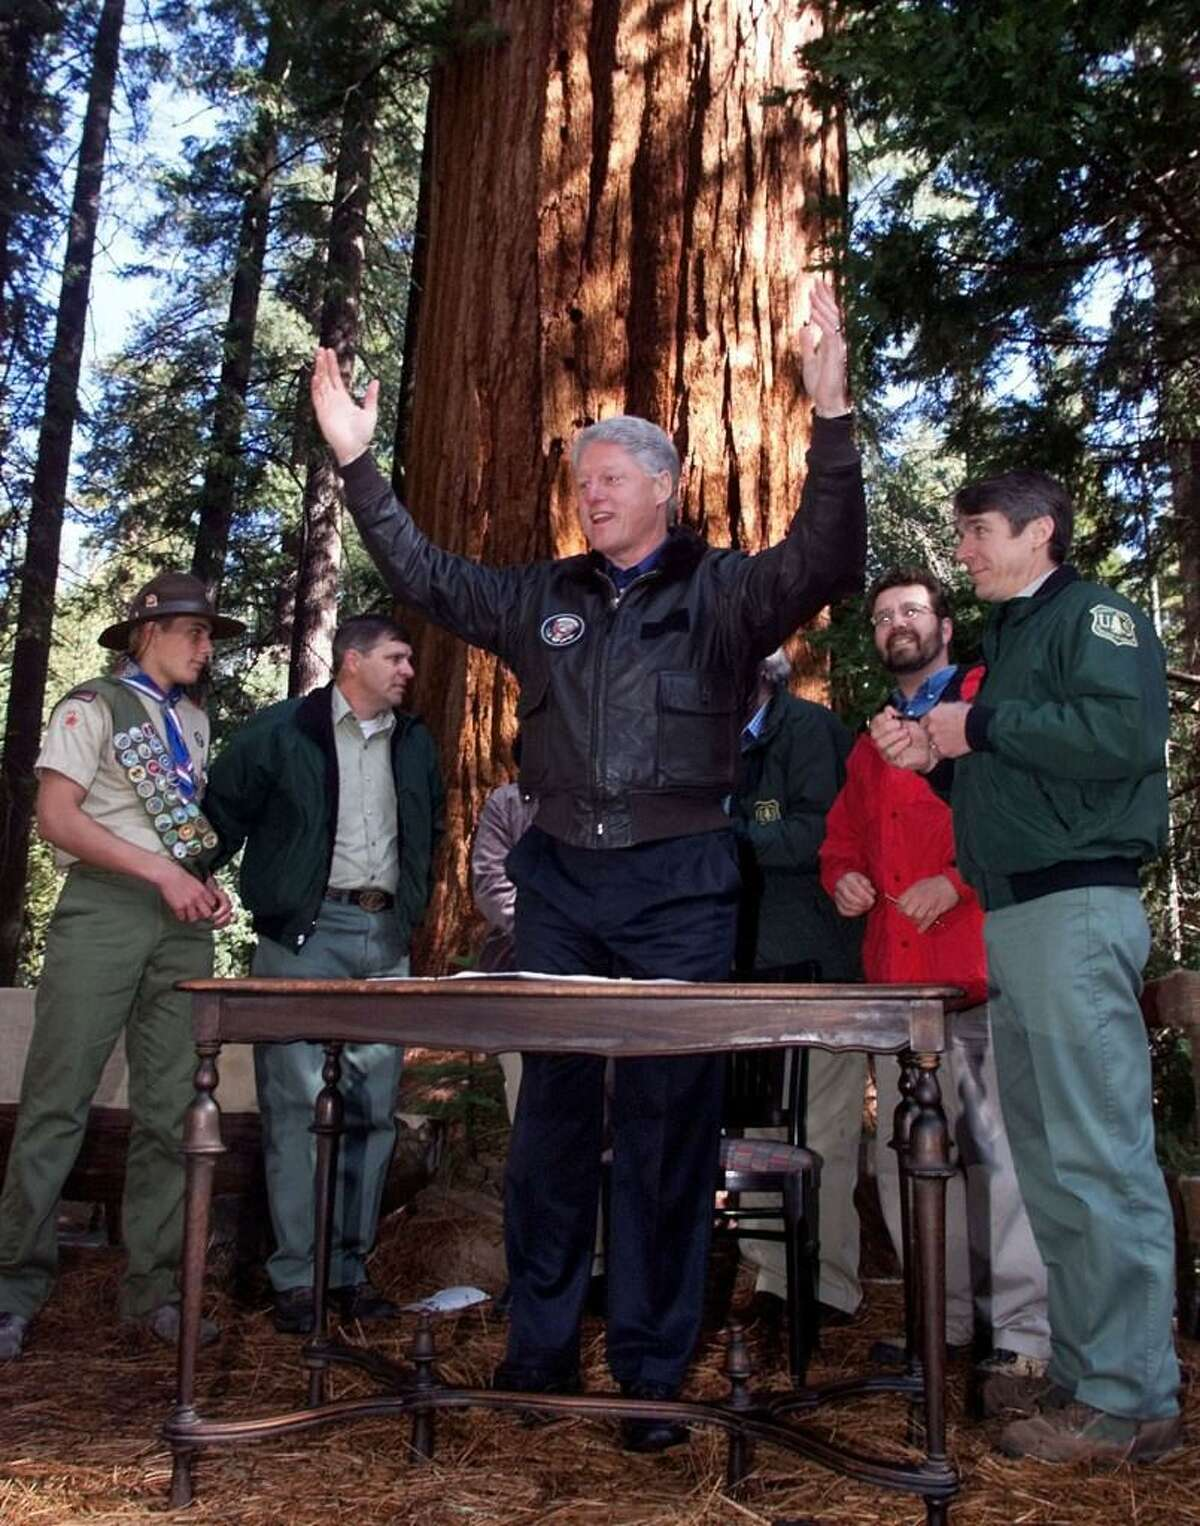 President Clinton established the Giant Sequoia National Monument in 2000, adding to the protected groves of trees at nearby Sequoia, Kings Canyon and Yosemite national parks. The Trump administration is considering downsizing the monument.